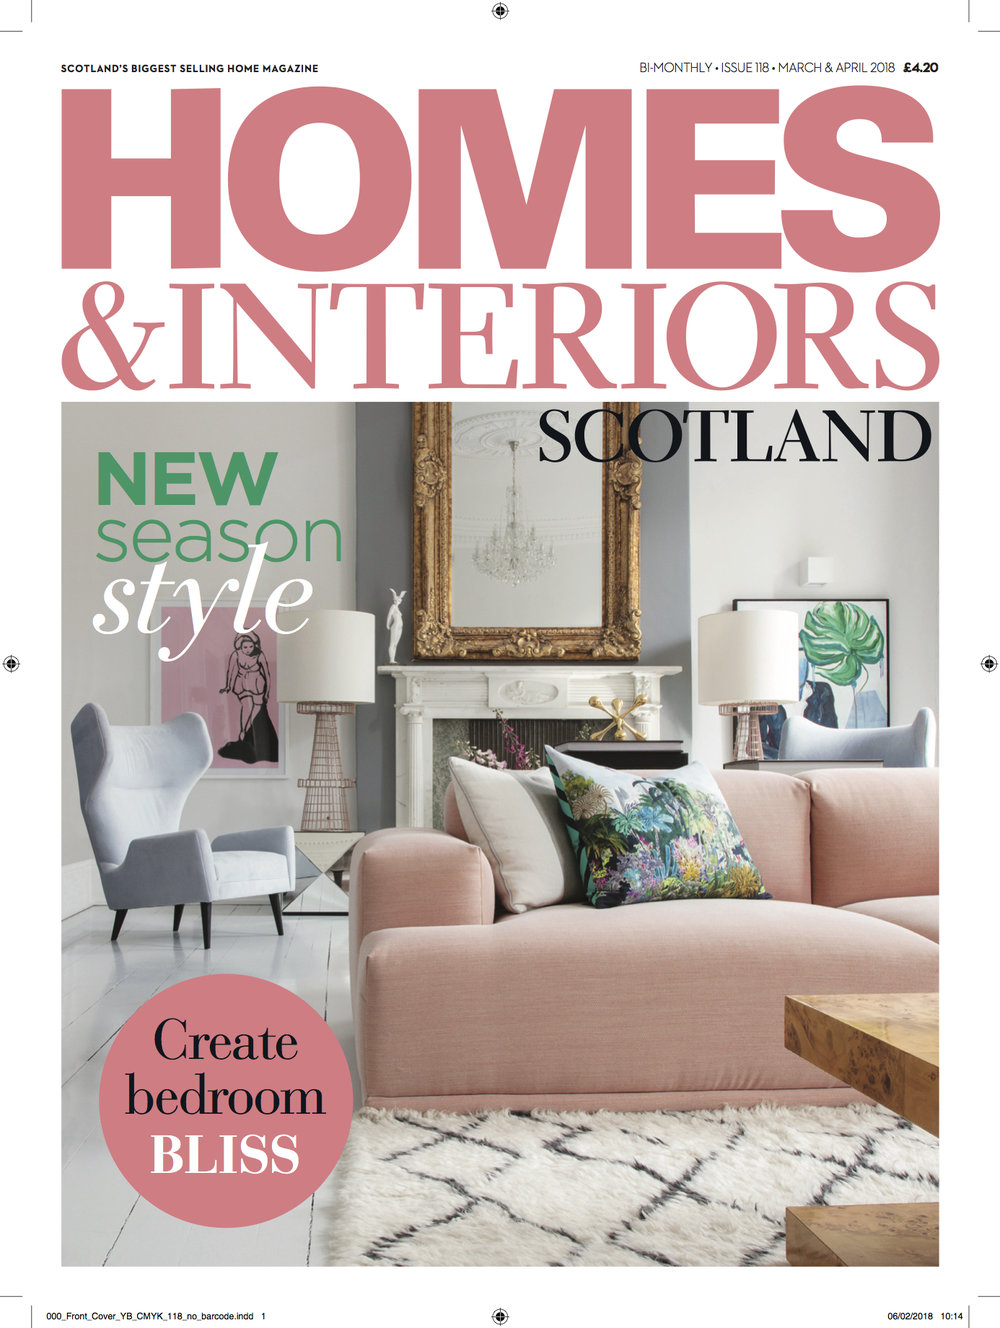 Homes & Interiors Scotland March April 2018